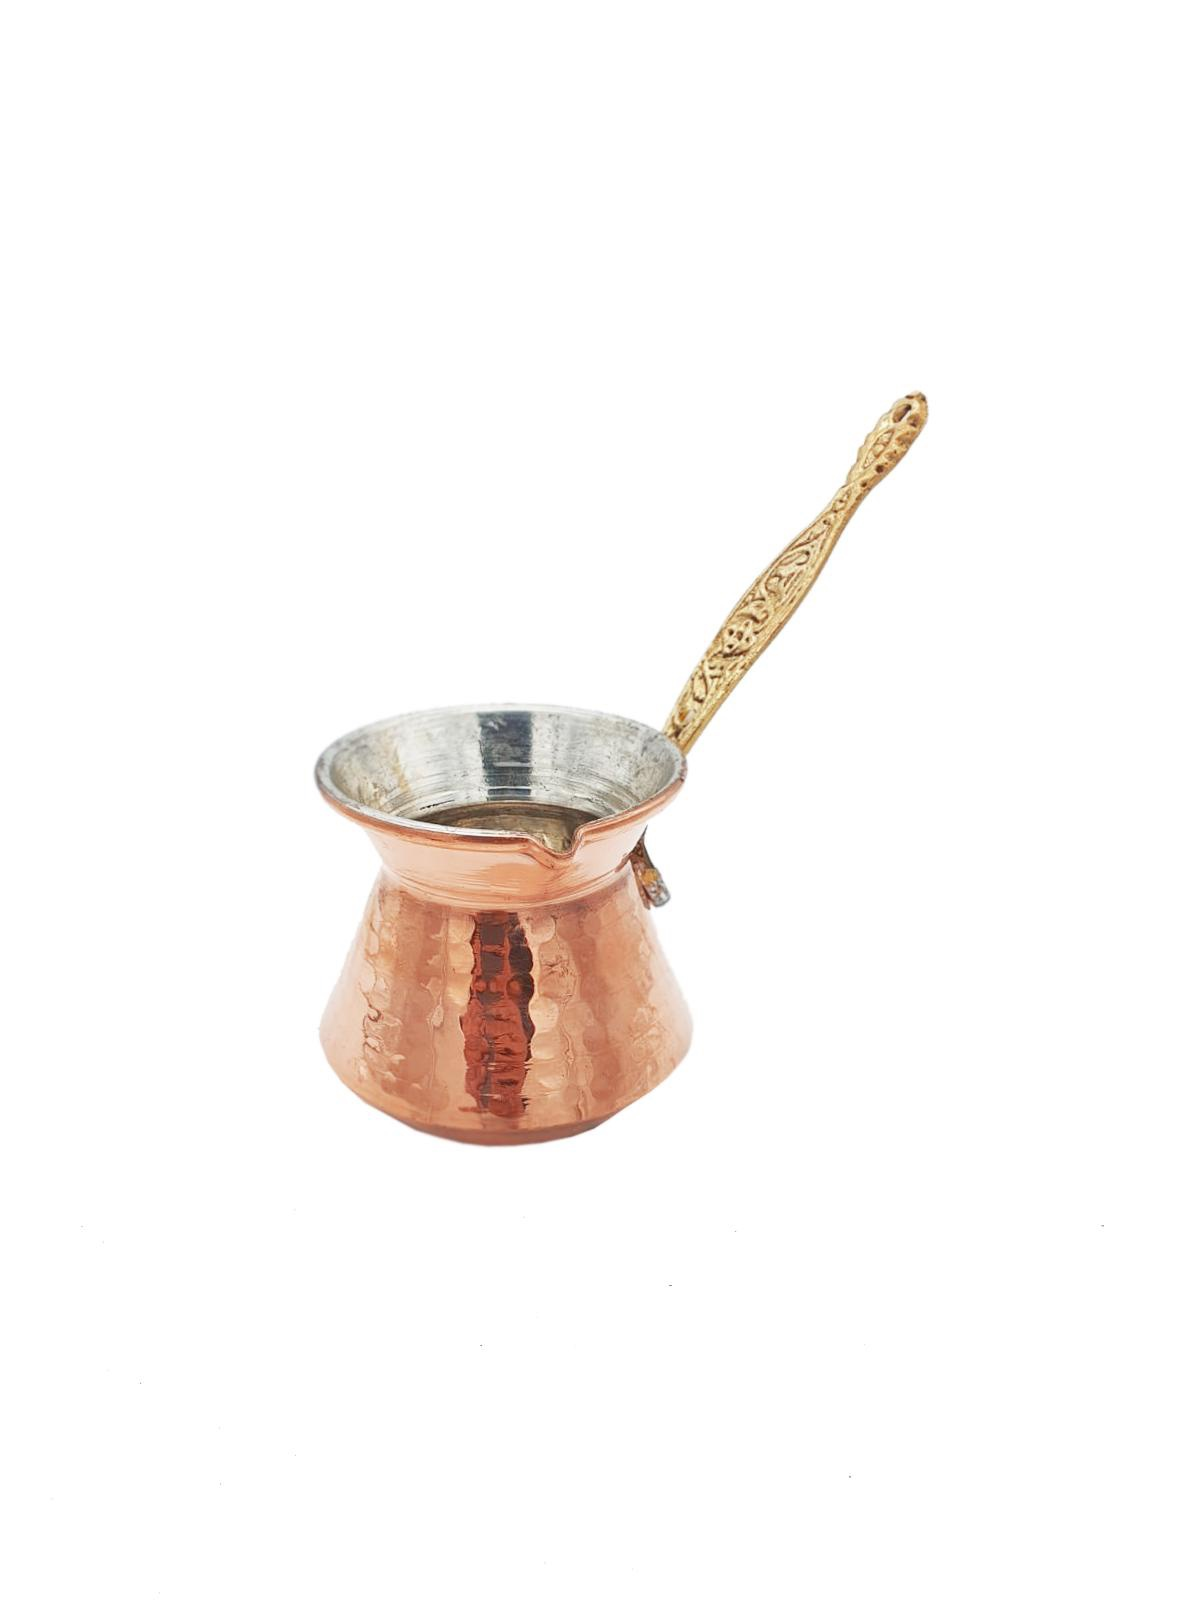 Buy Copper Coffee Pot with Gold Handle - Small